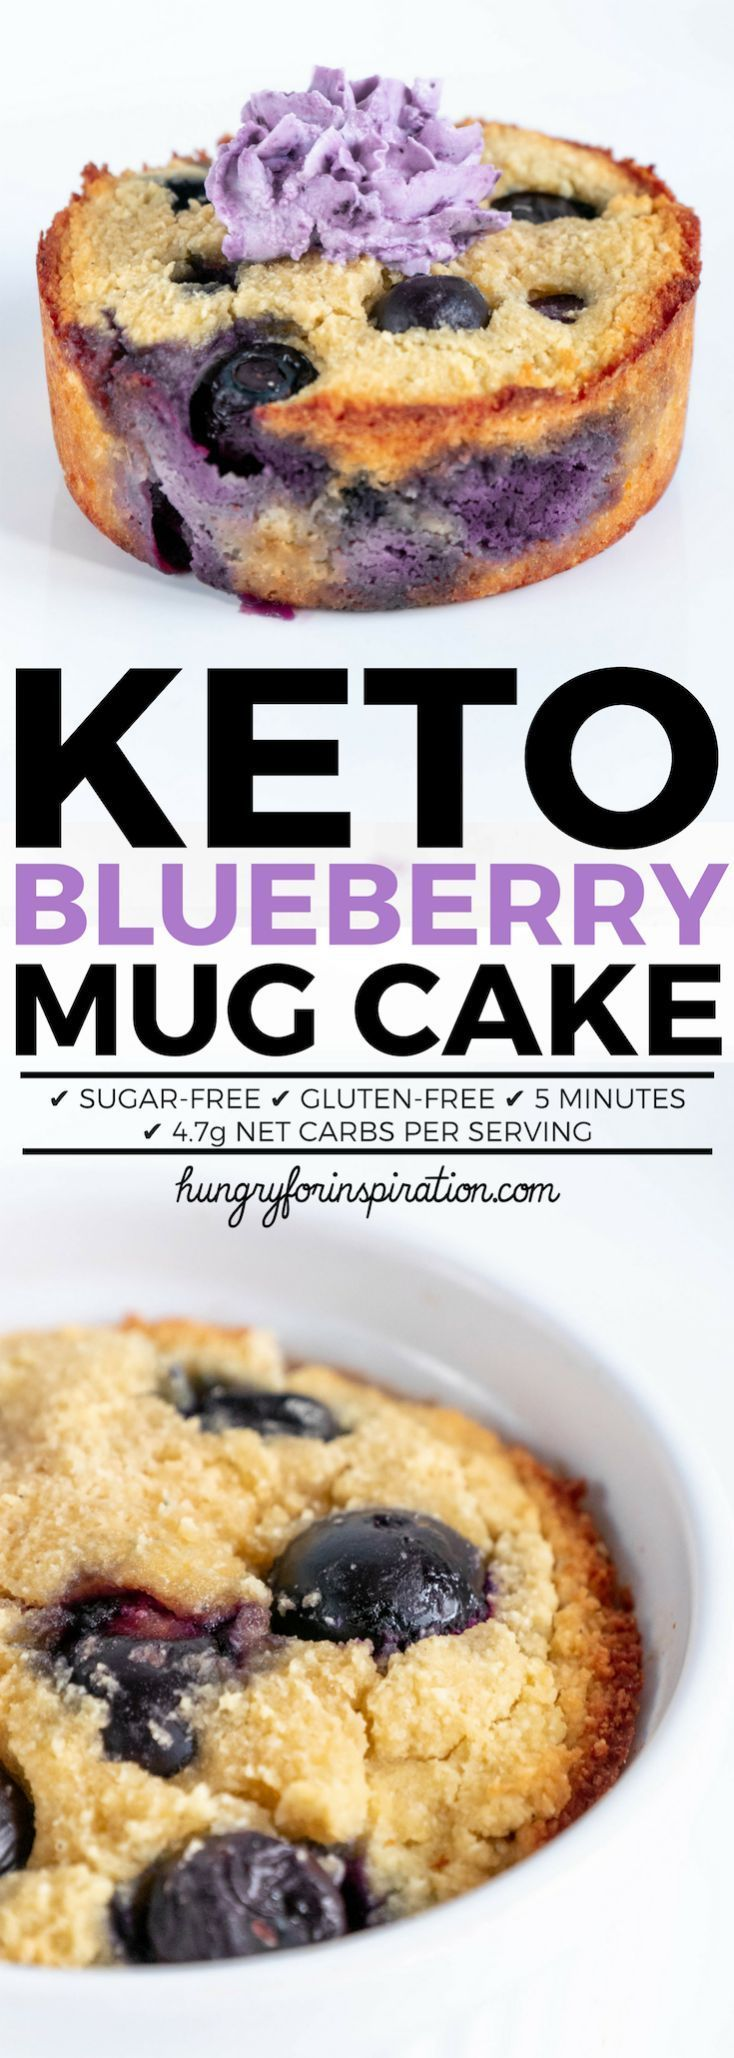 Easy 5-Minute Keto Blueberry Mug Cake (Keto Mug Cake) with only 4.7g net carbs per serving! Super quick, healthy, gluten-free and sugar-free! With easy paleo option! By hungryforinspiration.com #ketodessert #ketomugcake #ketosnacks #keto #ketorecipes #ketogenic #lowcarbdesserts #lowcarb #mugcake #mugcake